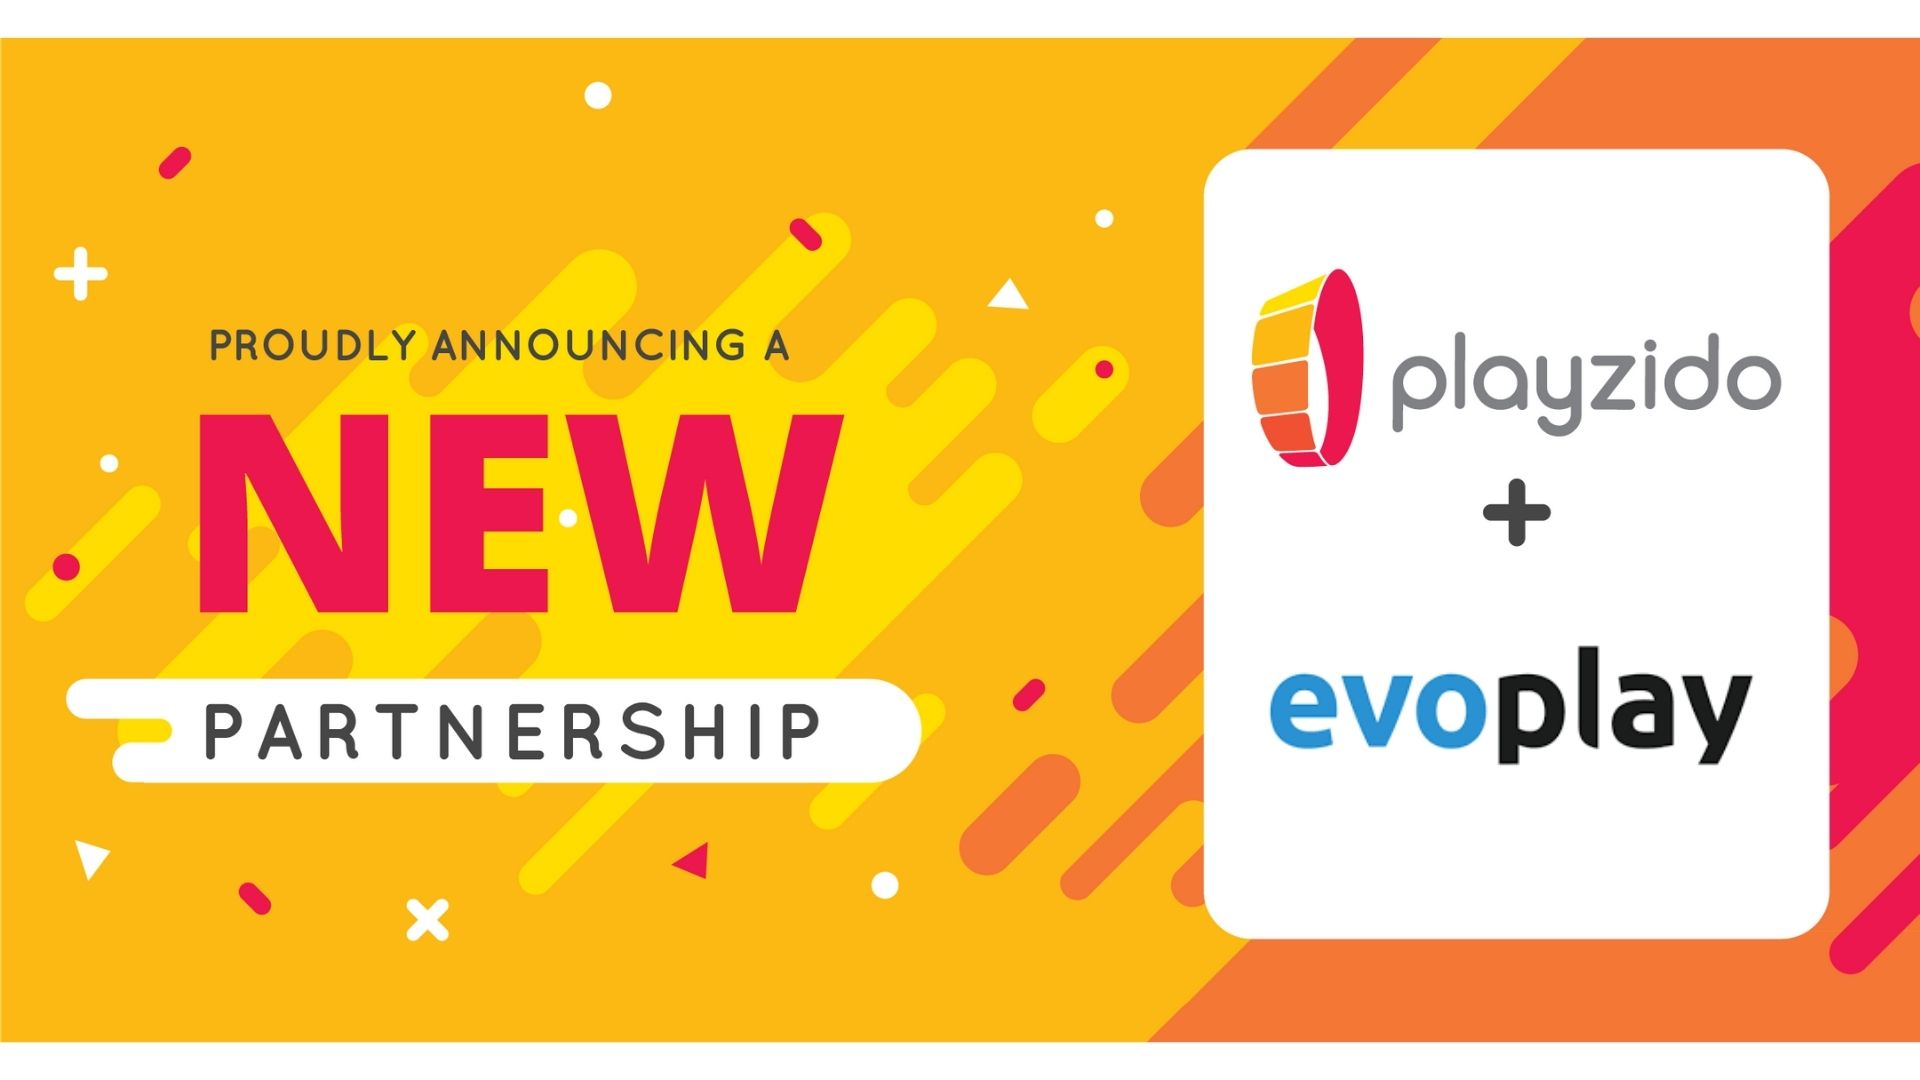 Evoplay Entertainment widens its reach with new Playzido deal